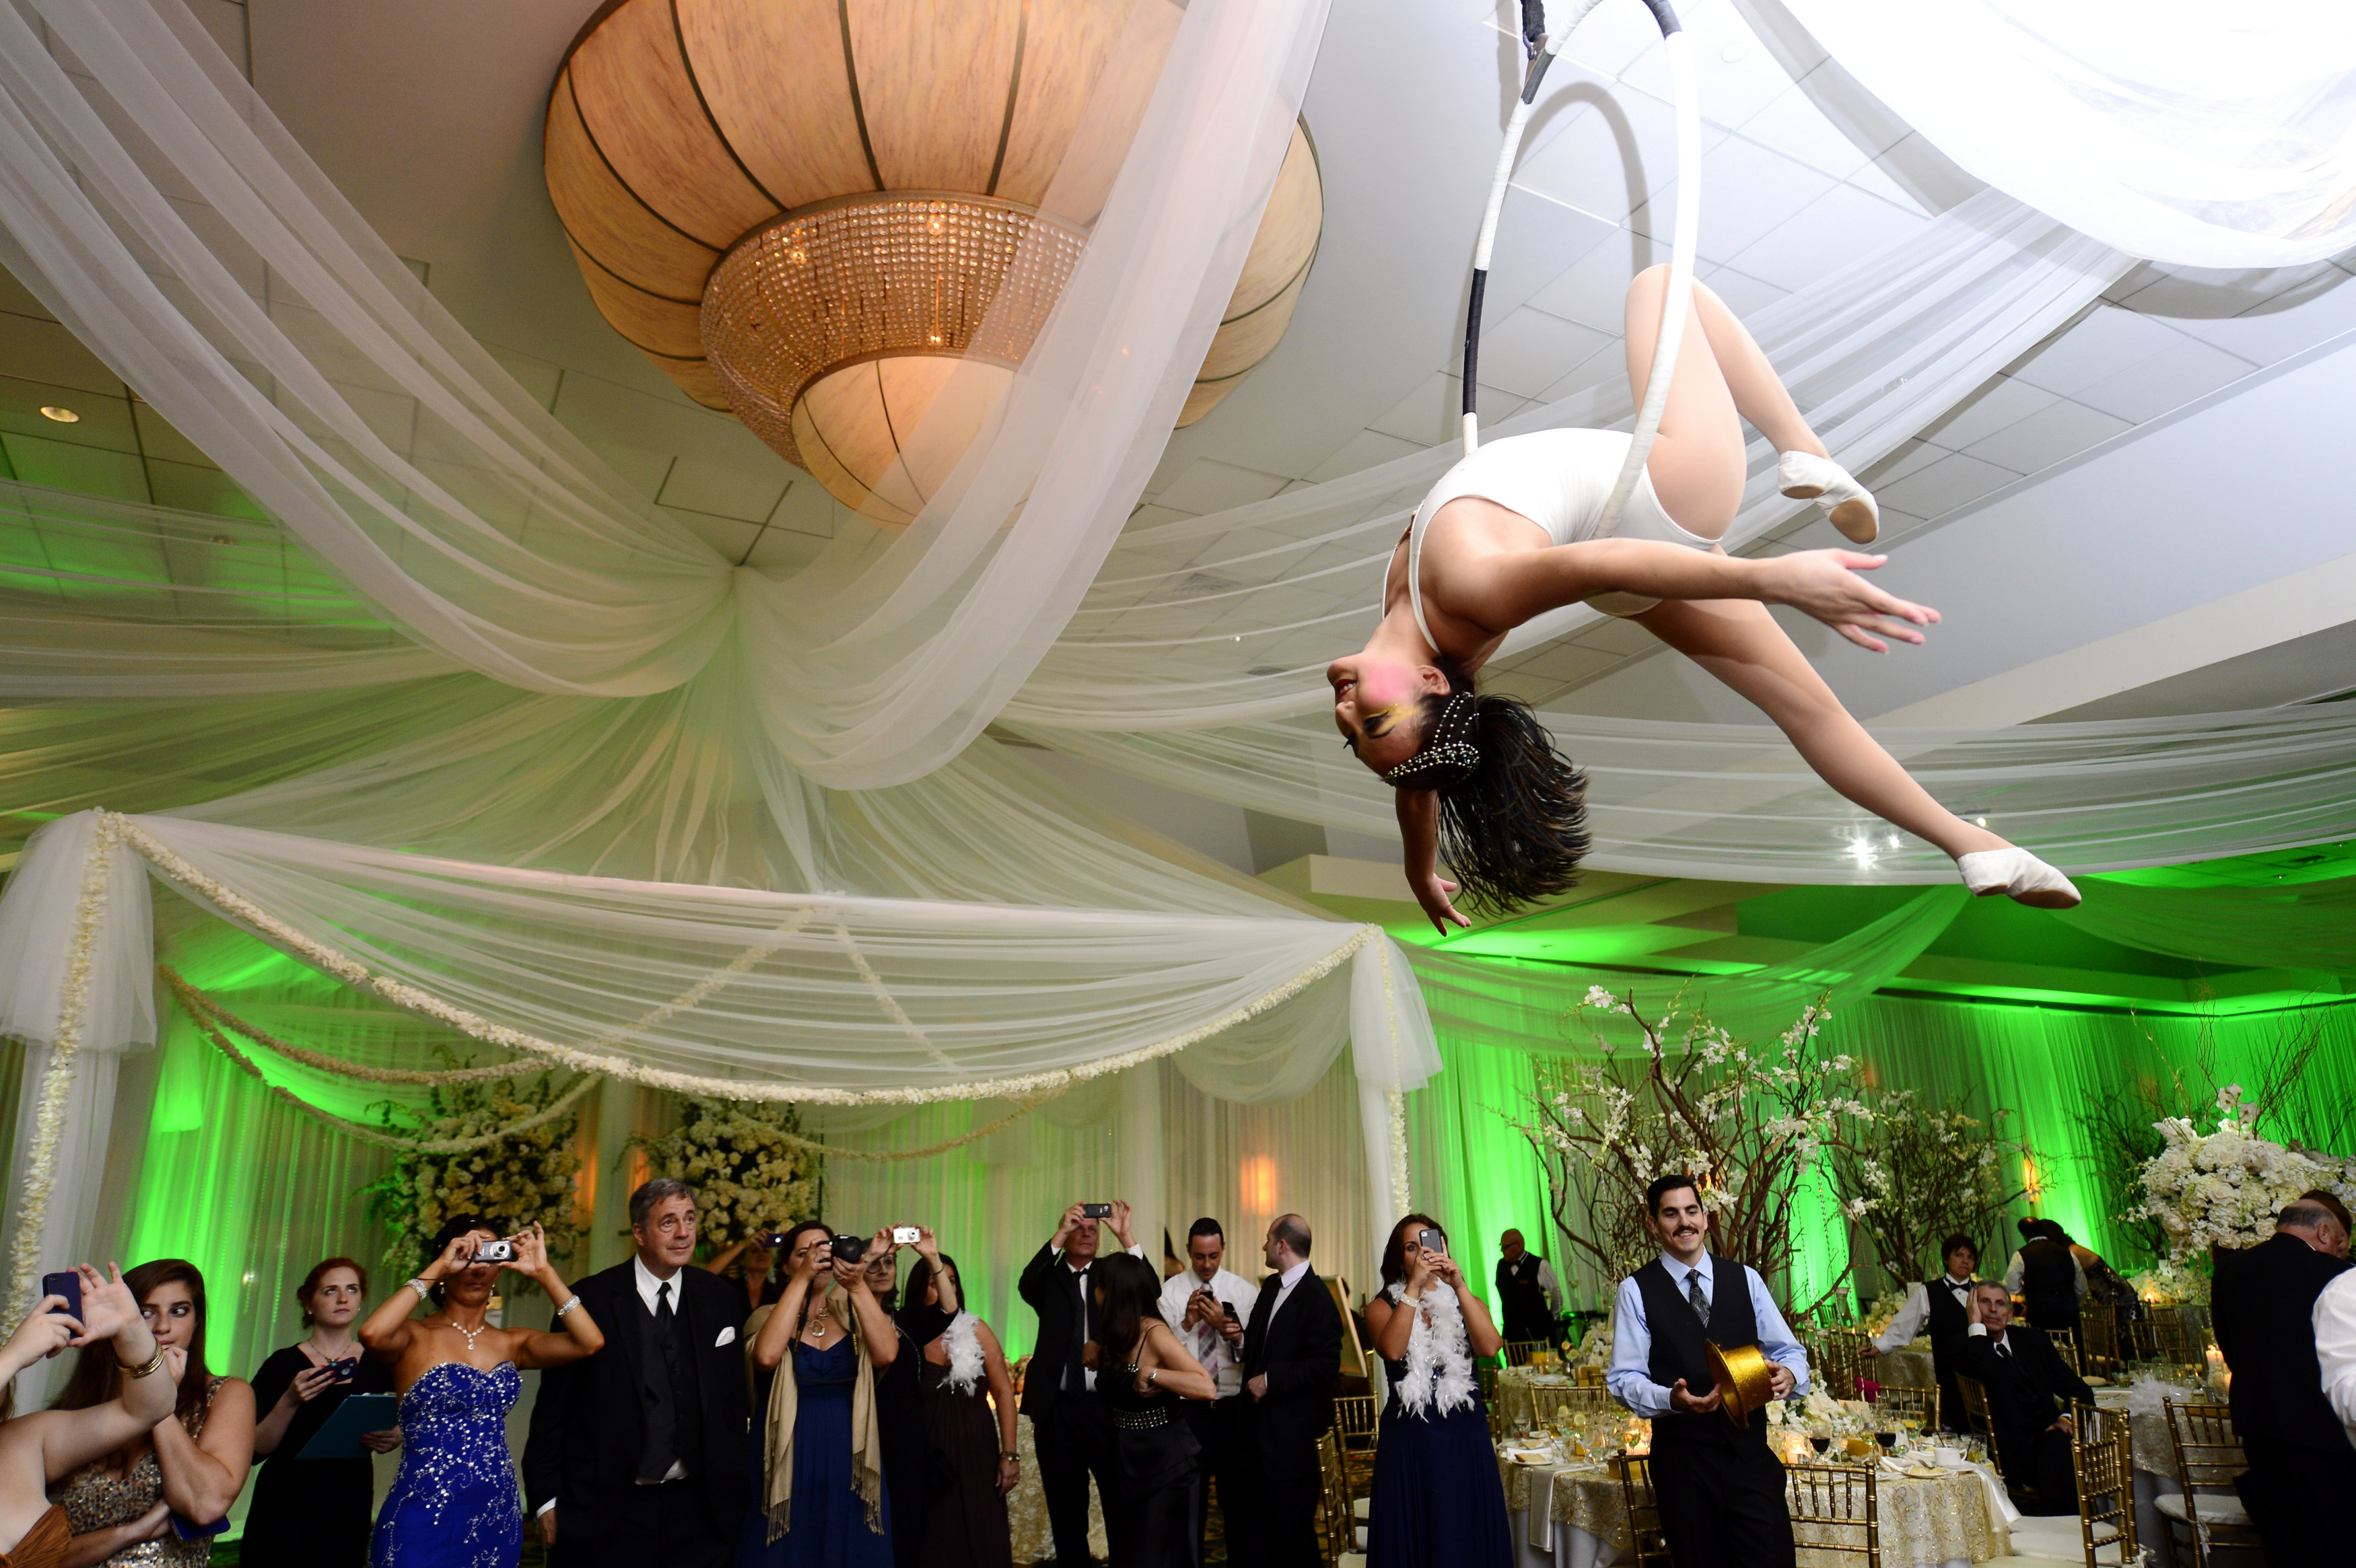 Wedding reception with unique performers aerialists acrobatic performance over dance floor